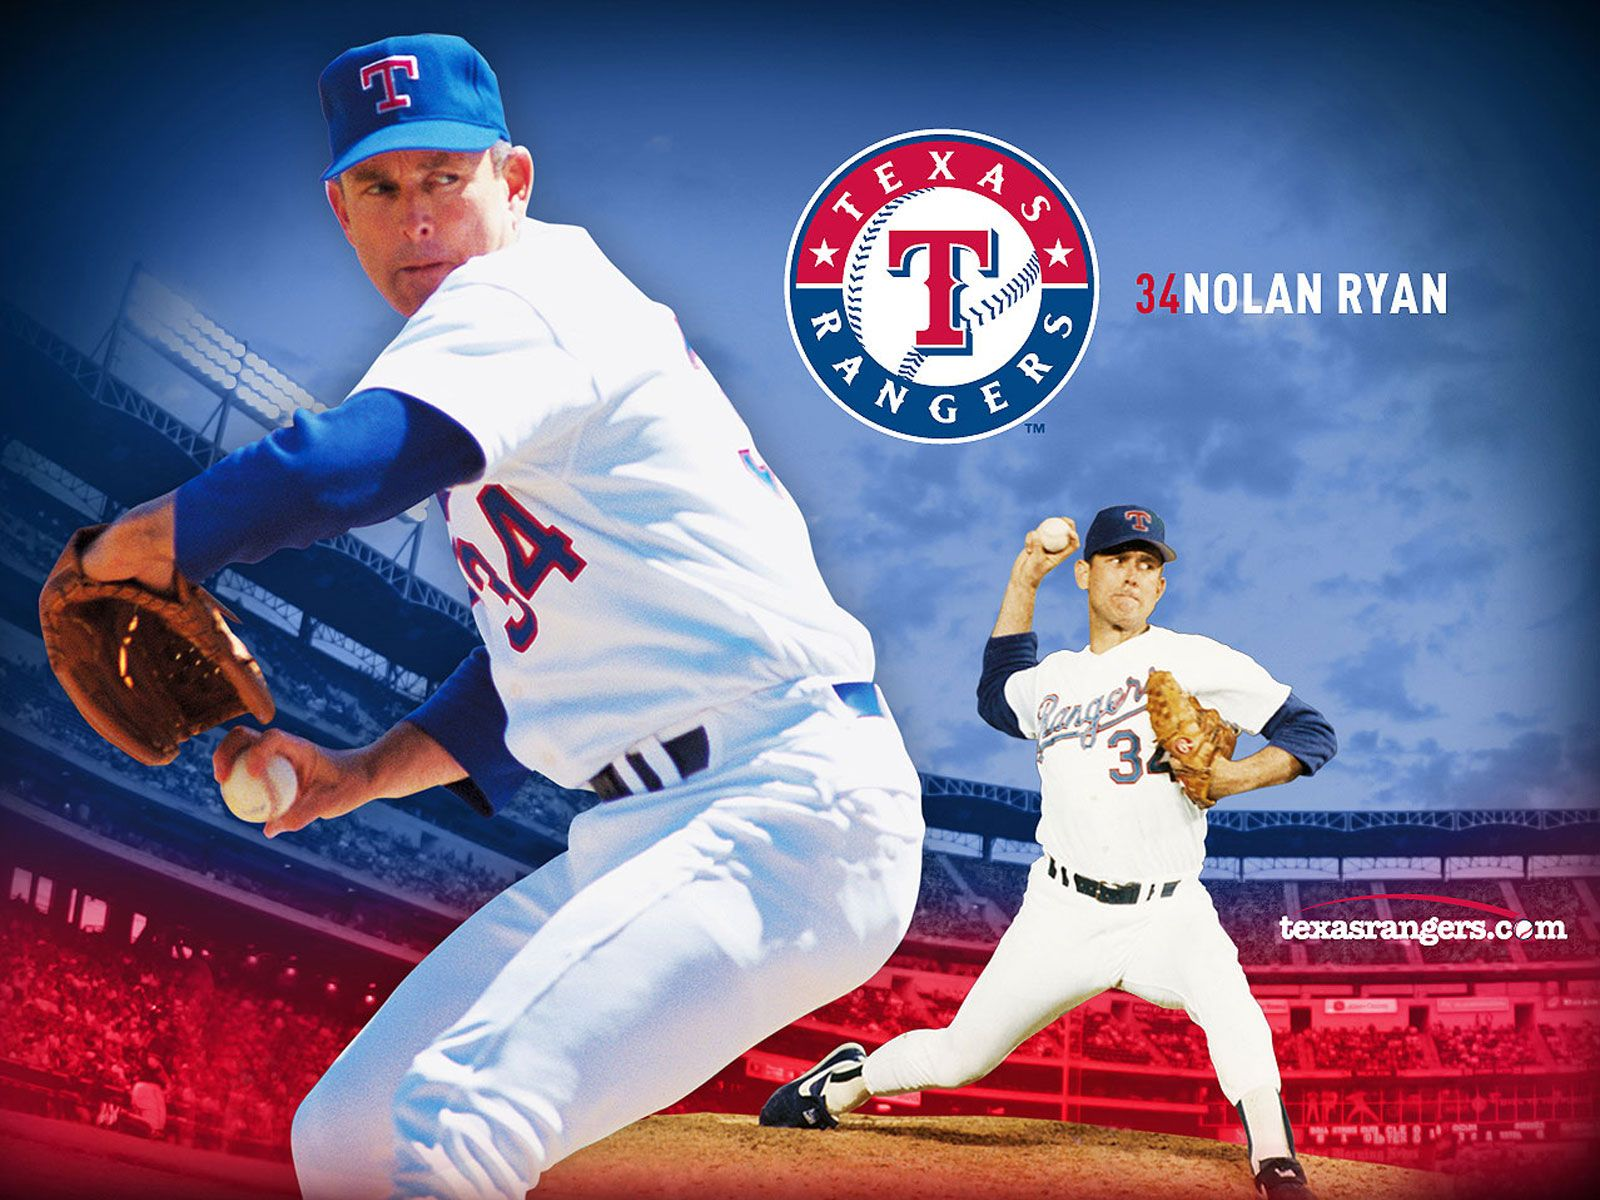 nolan ryan turns 68! train keeps a rolling. #ryanexpress | reasons